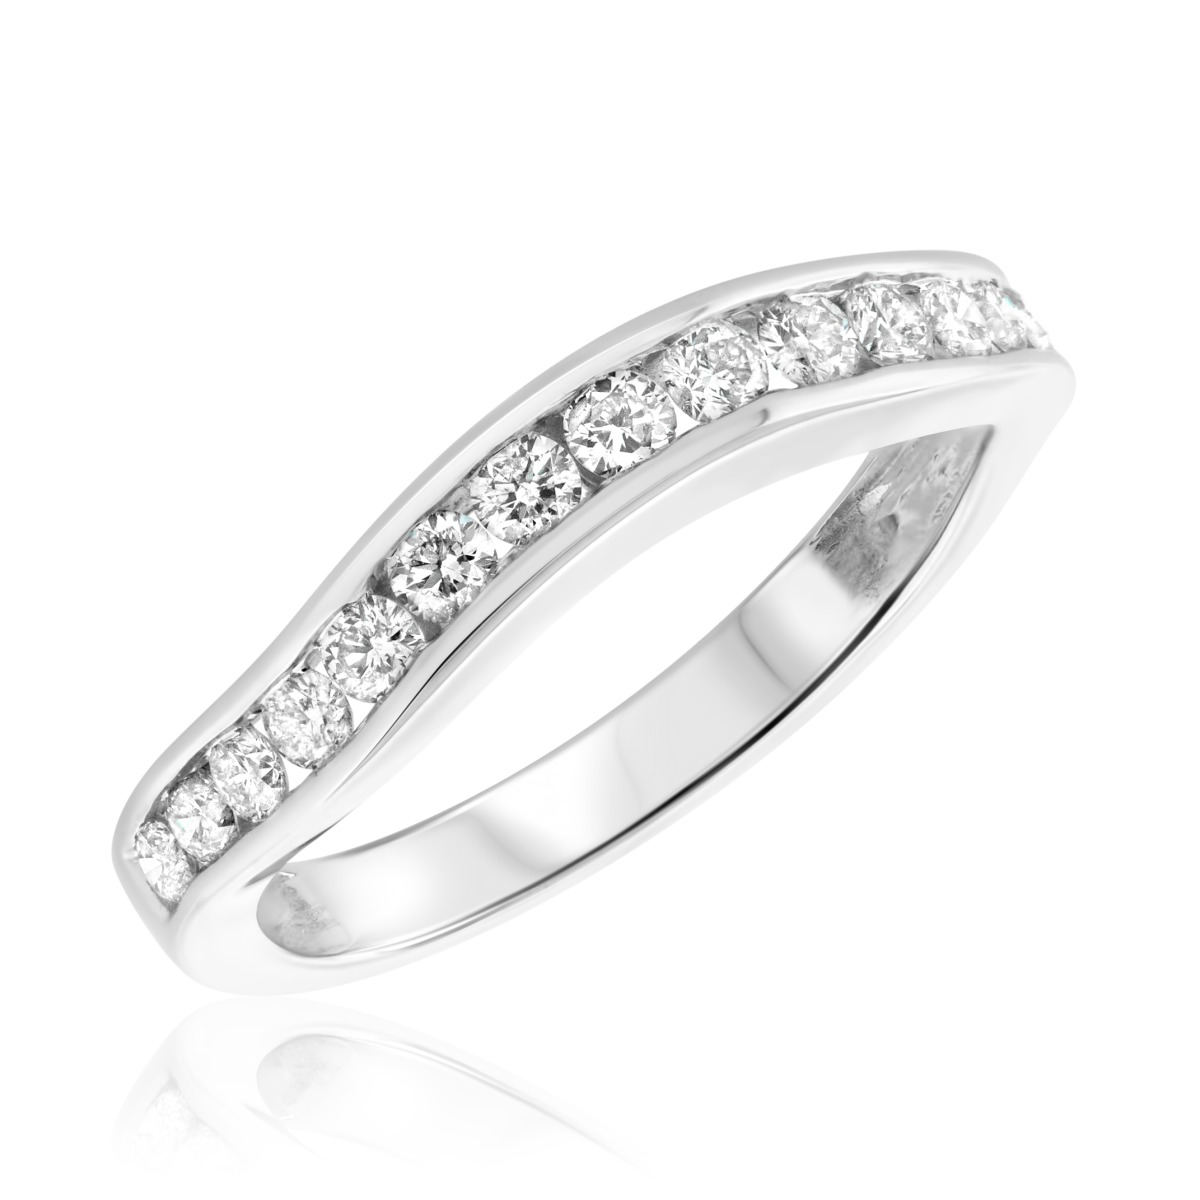 1/2 CT. T.W. Diamond Ladies Wedding Band  10K White Gold